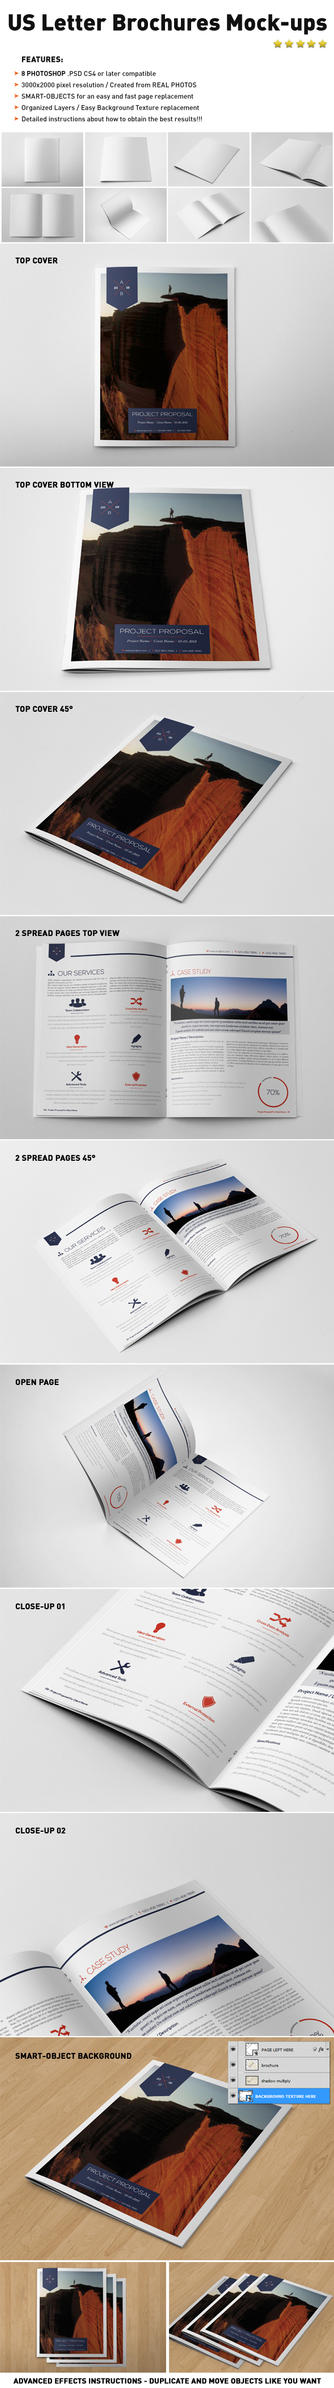 Photorealistic US LETTER Brochure Mock-ups by andre2886